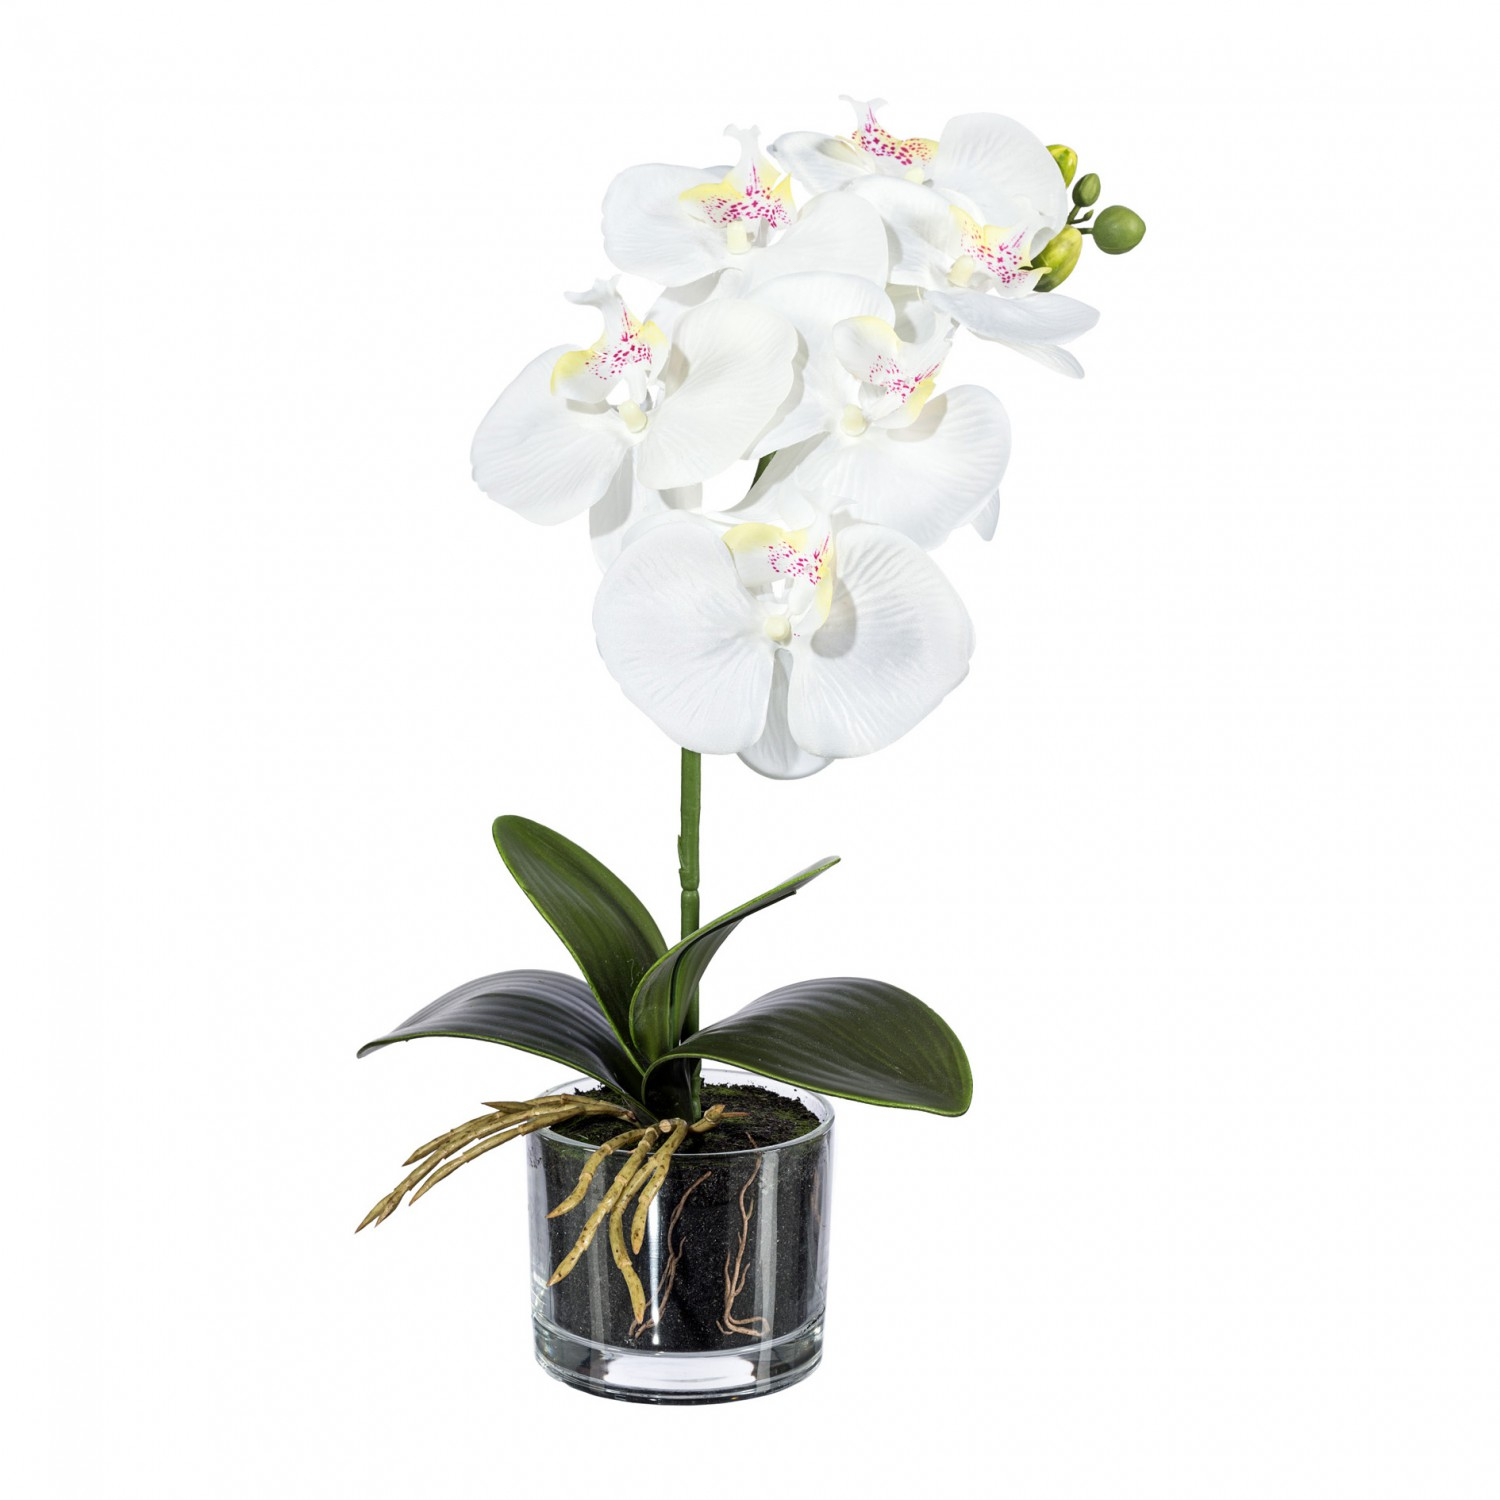 orchidee phalaenopsis kunstpflanze 40 cm in weiss im glas kunstpflanzen bl hende pflanzen. Black Bedroom Furniture Sets. Home Design Ideas